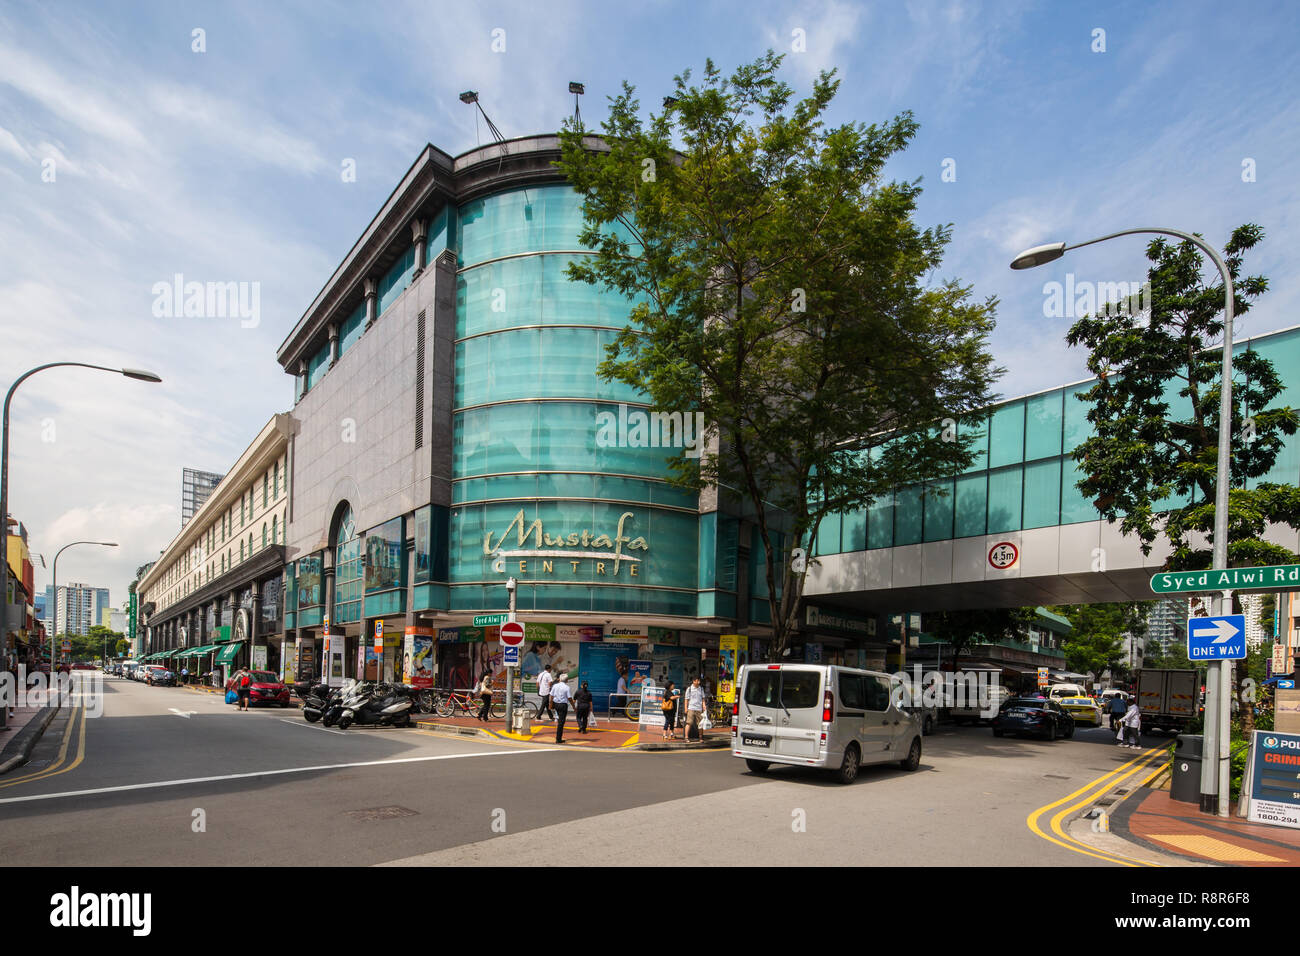 f8a6c3d7d379a Mustafa Centre is one of Singapore s 24-hour shopping malls on Syed Alwi  Road in the cultural district of Little India. A favourite place for  tourists